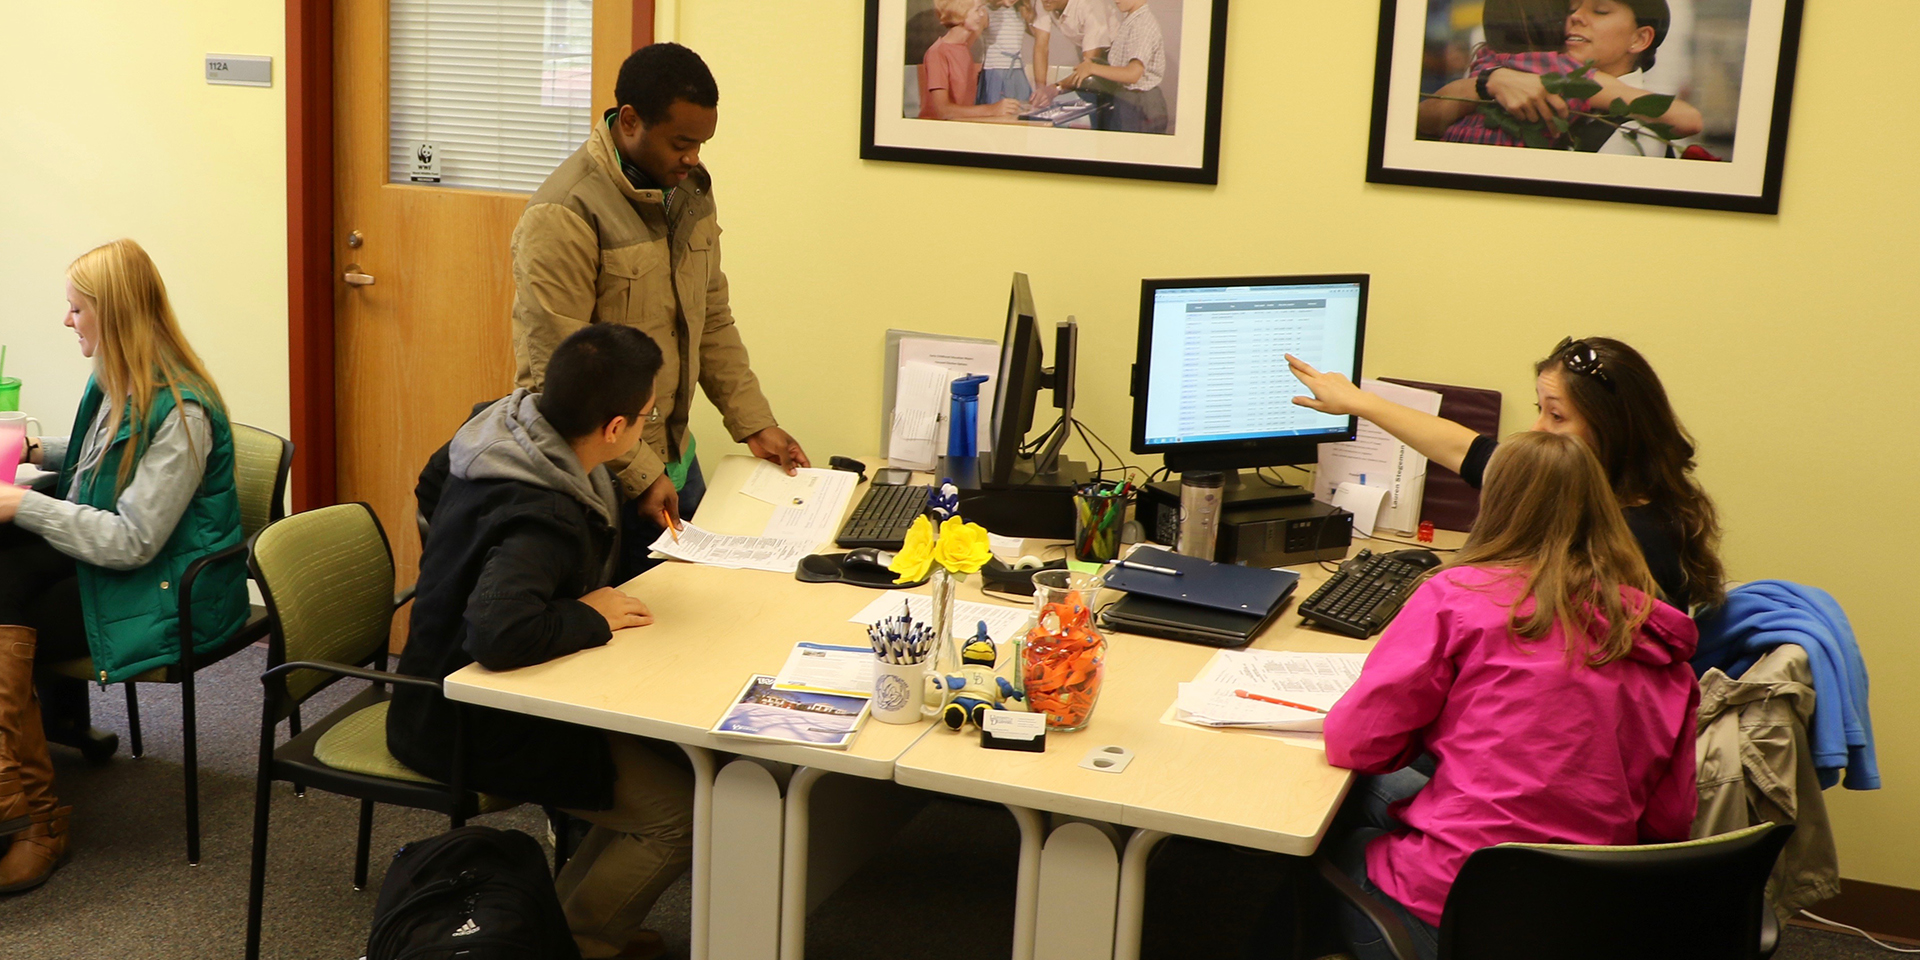 UD students in the academic advisement office